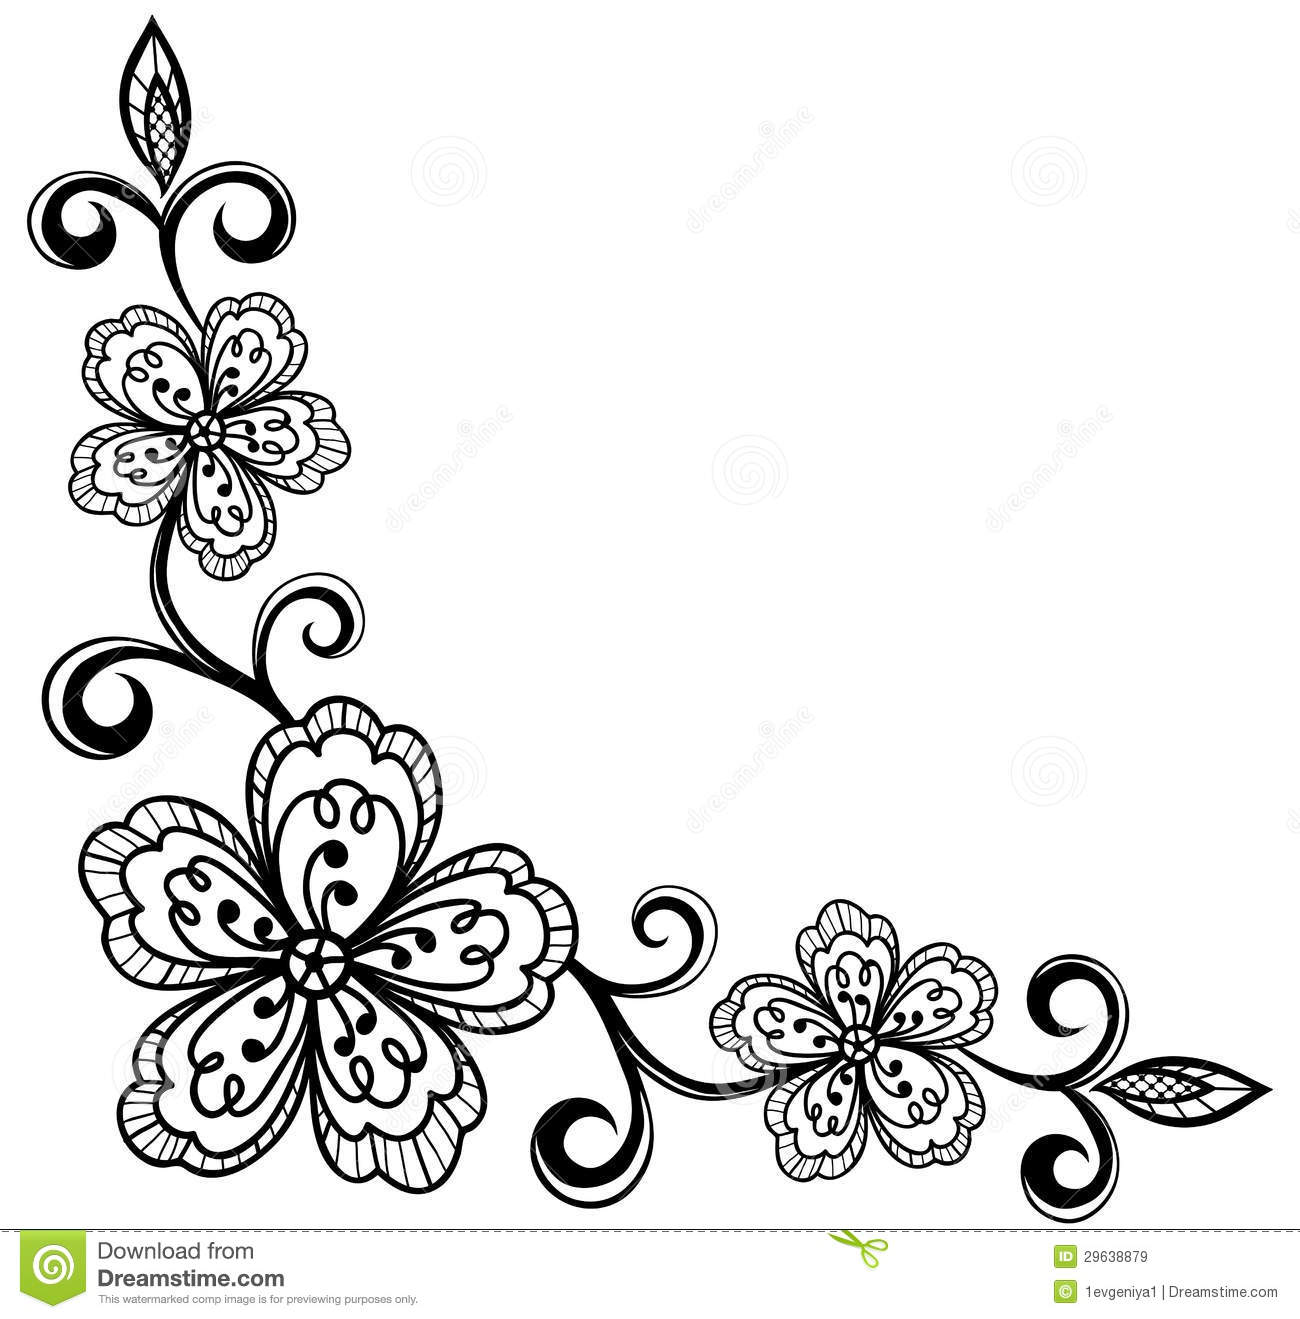 Corner ornamental lace flowers black and white stock vector download corner ornamental lace flowers black and white stock vector illustration of easter mightylinksfo